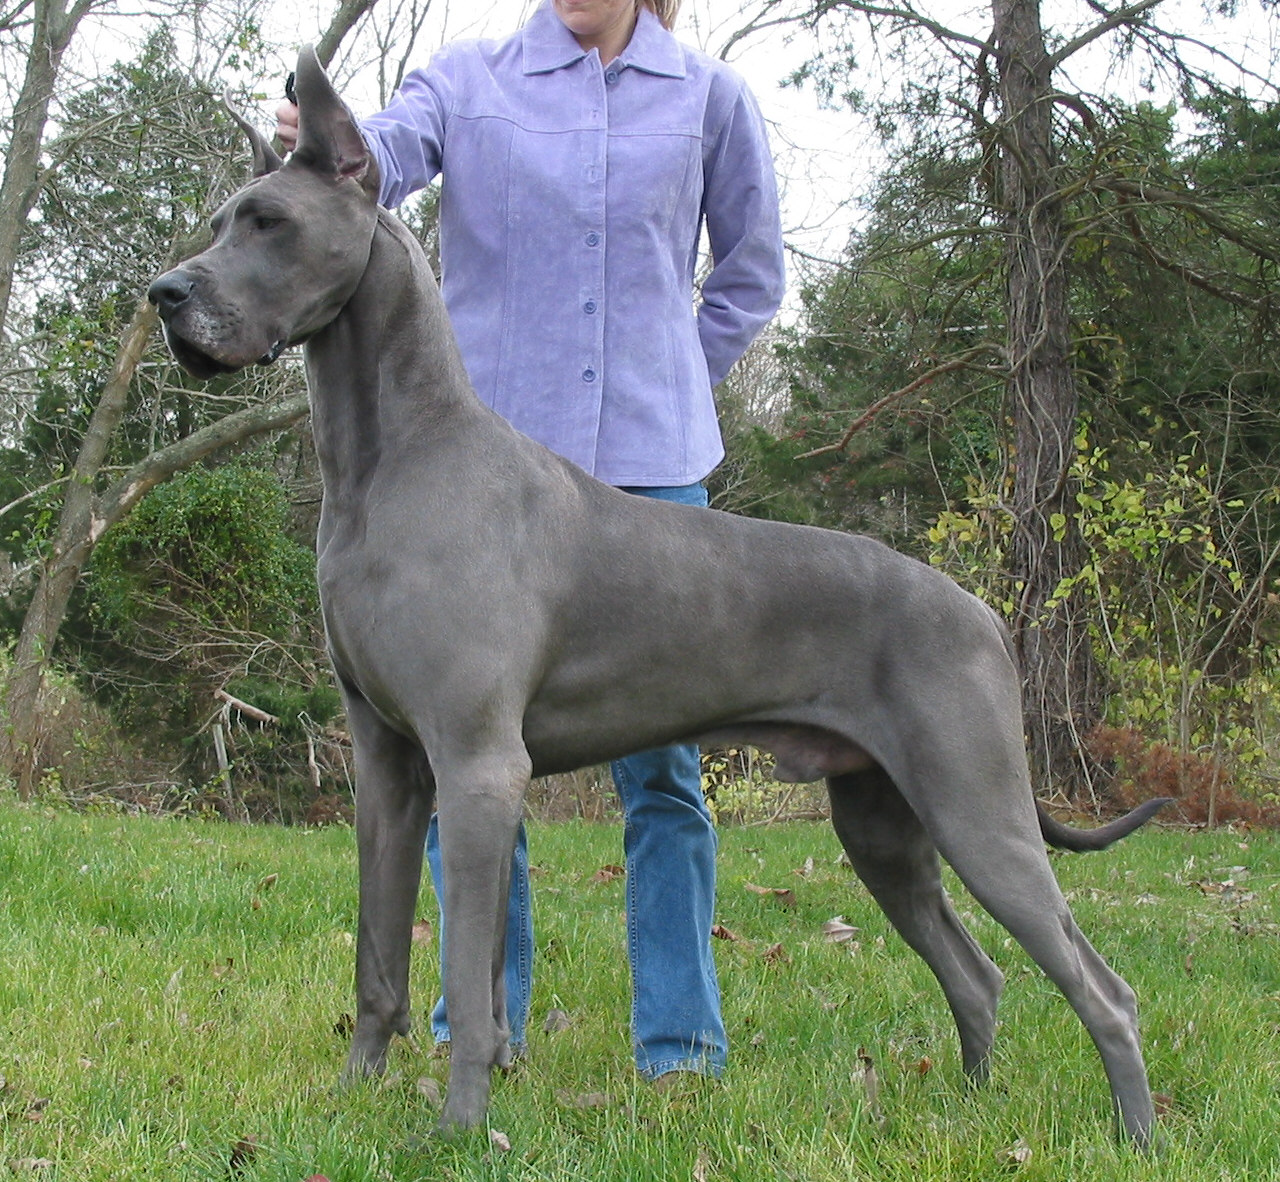 Chien-gris Dog: Chien Gris Big Dogs Versus Big Acting Dogs Breed